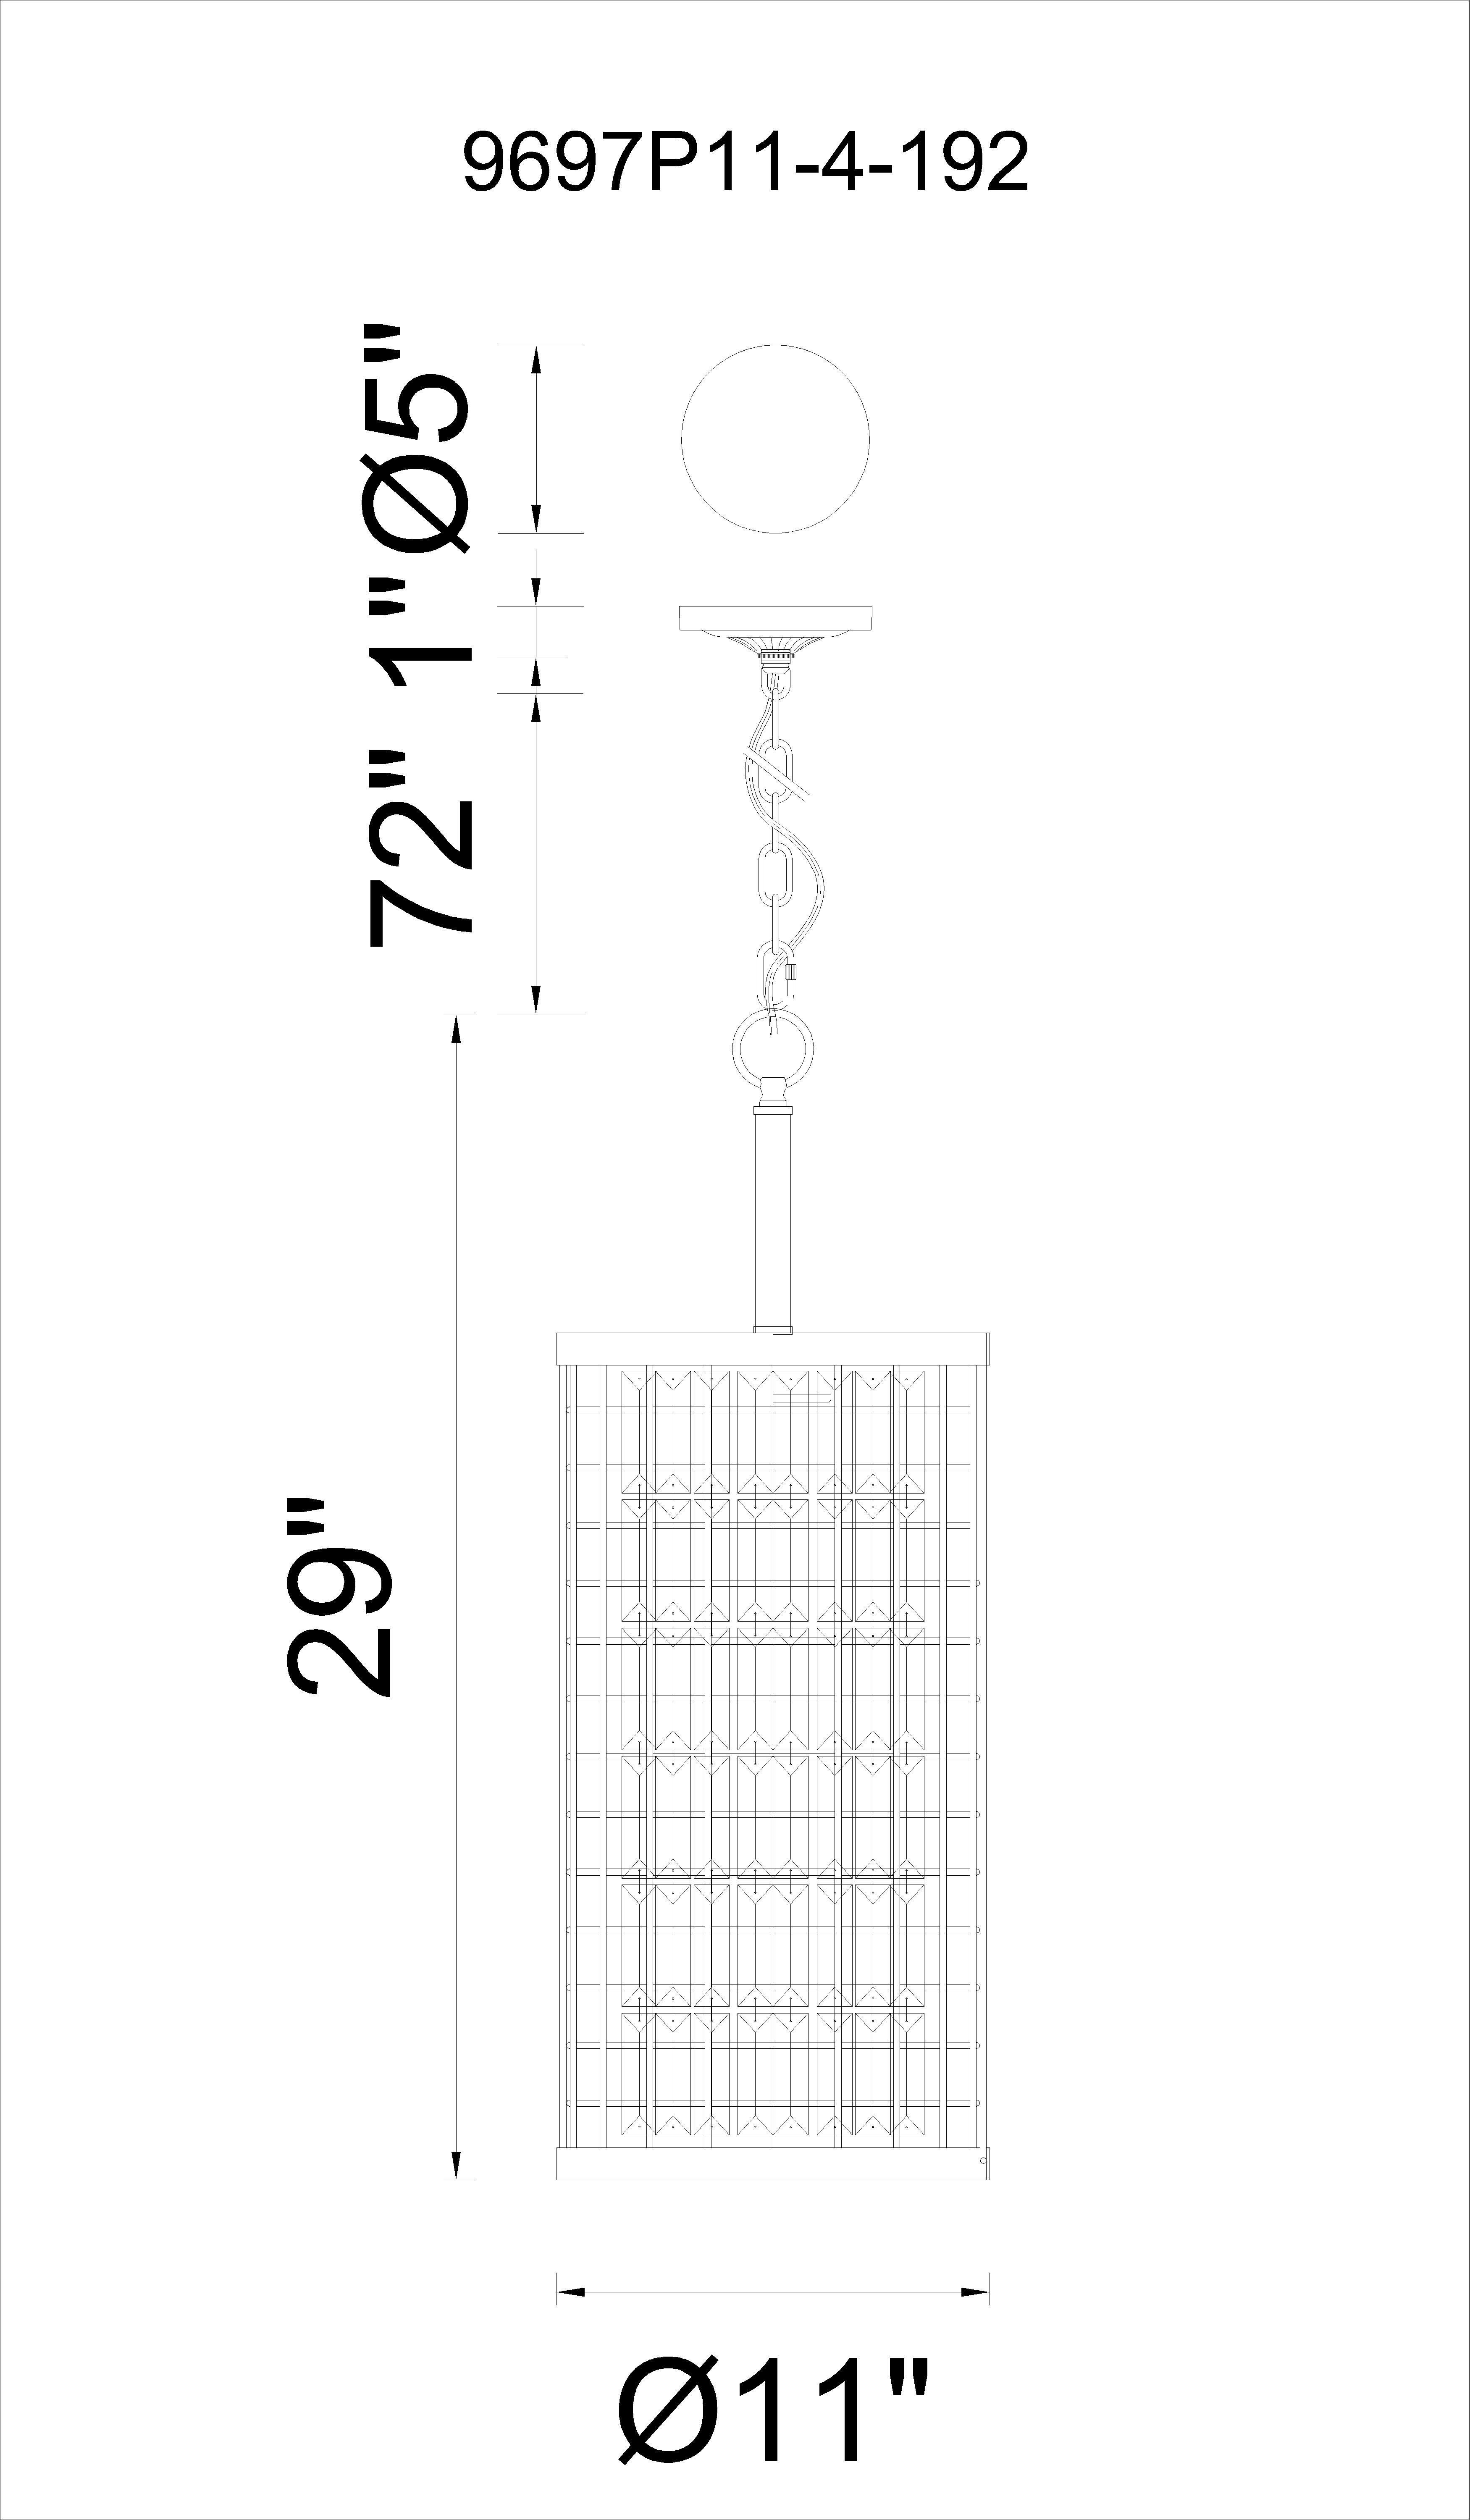 CWI Lighting Meghna 4 Light Up Chandelier With Brown Finish Model: 9697P11-4-192 Line Drawing